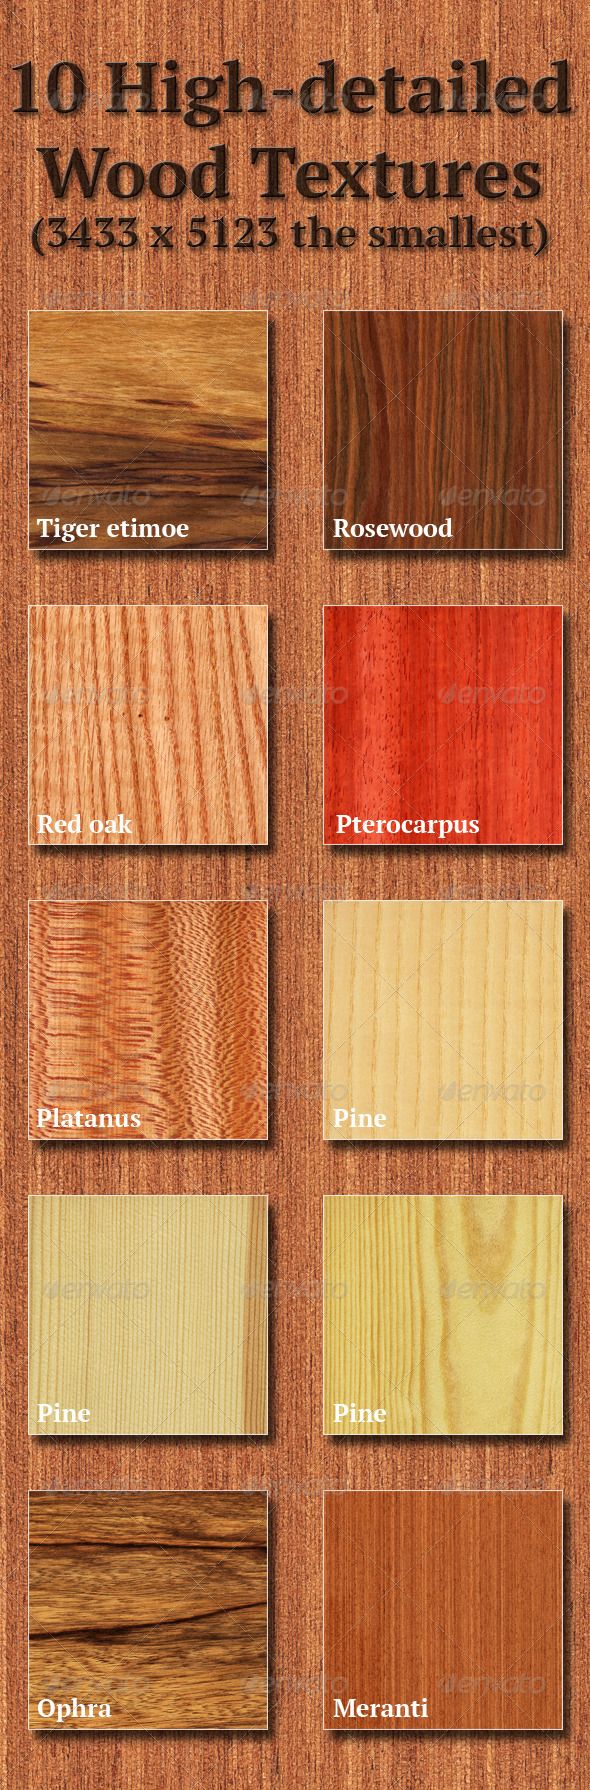 High-Detailed Wood Textures Set 5 - Wood Textures